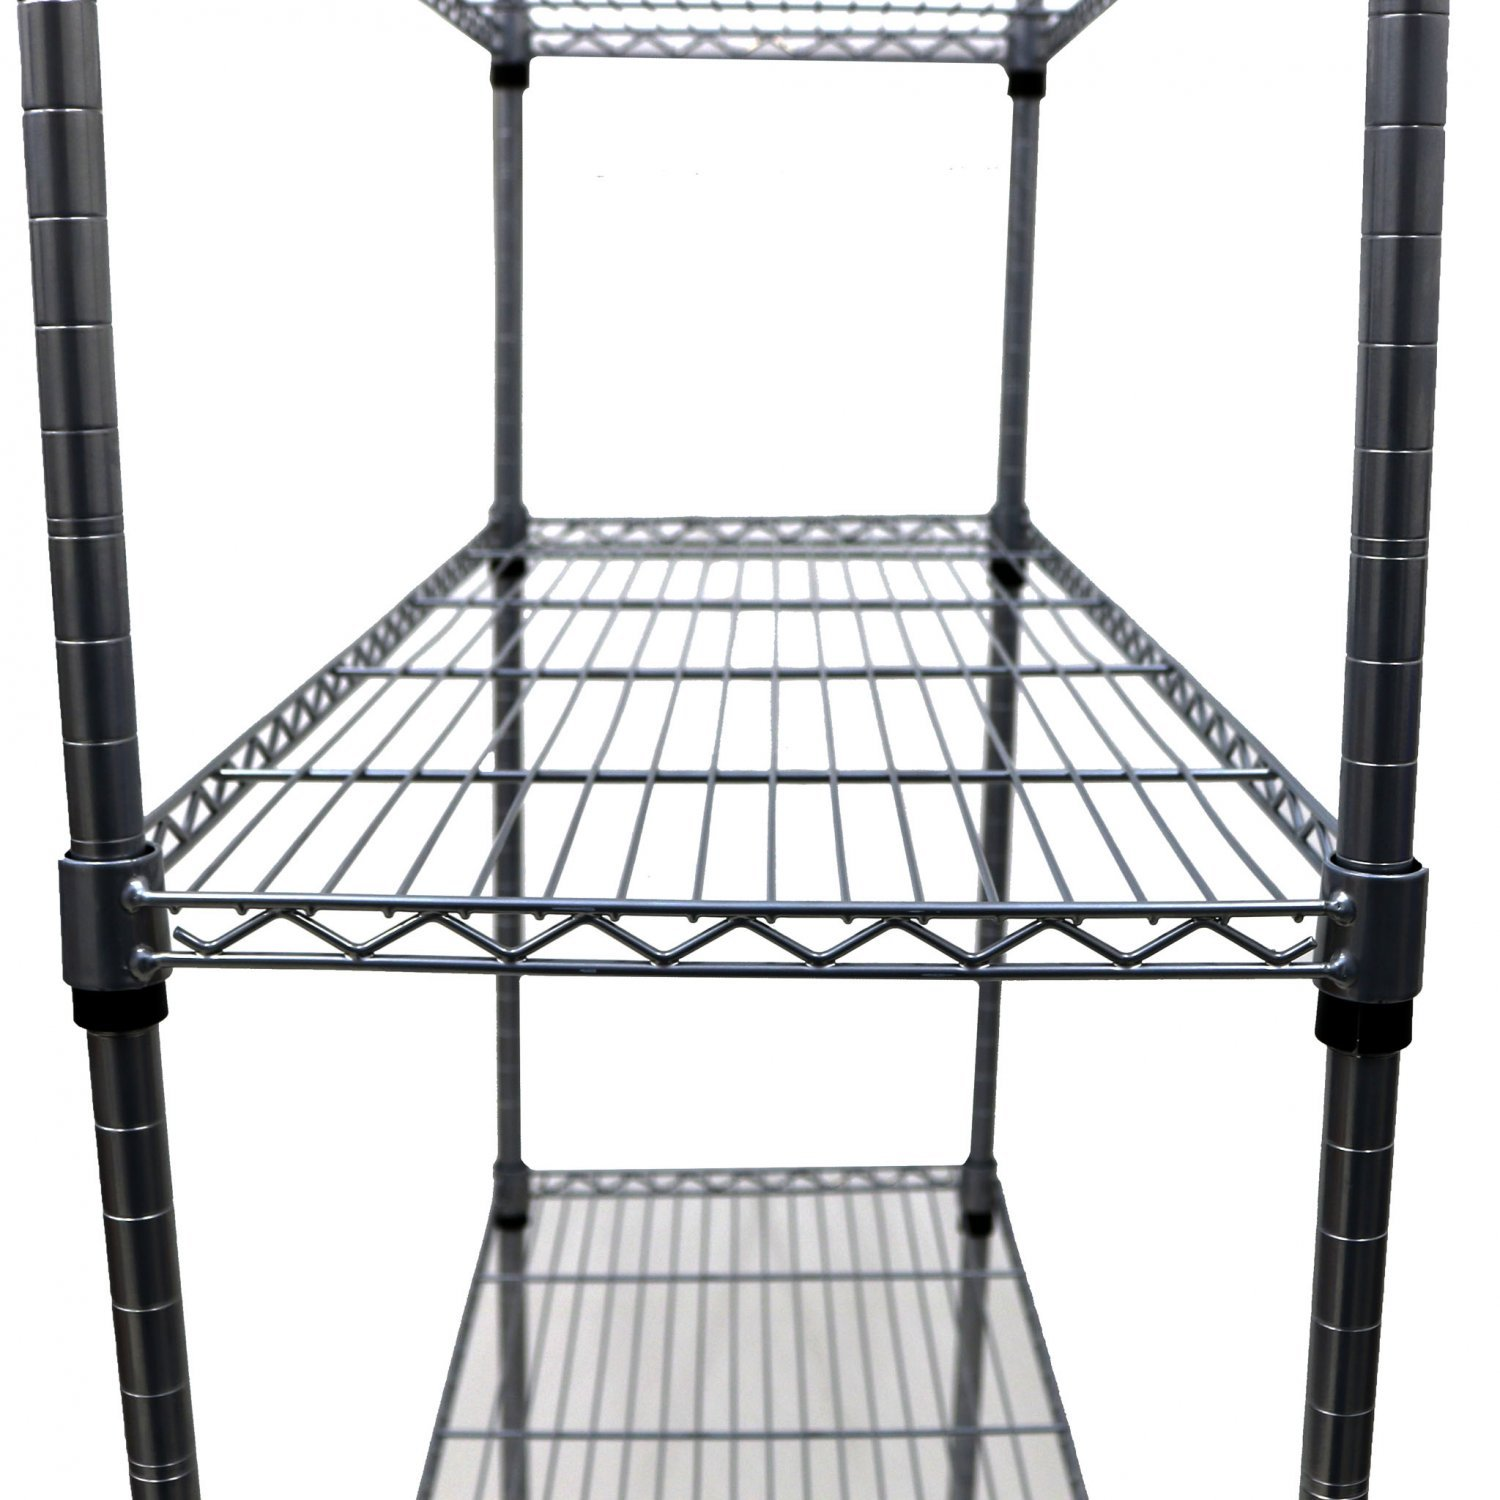 4 Tier Heavy Duty Steel Wire Rack Kitchen Storage Unit W